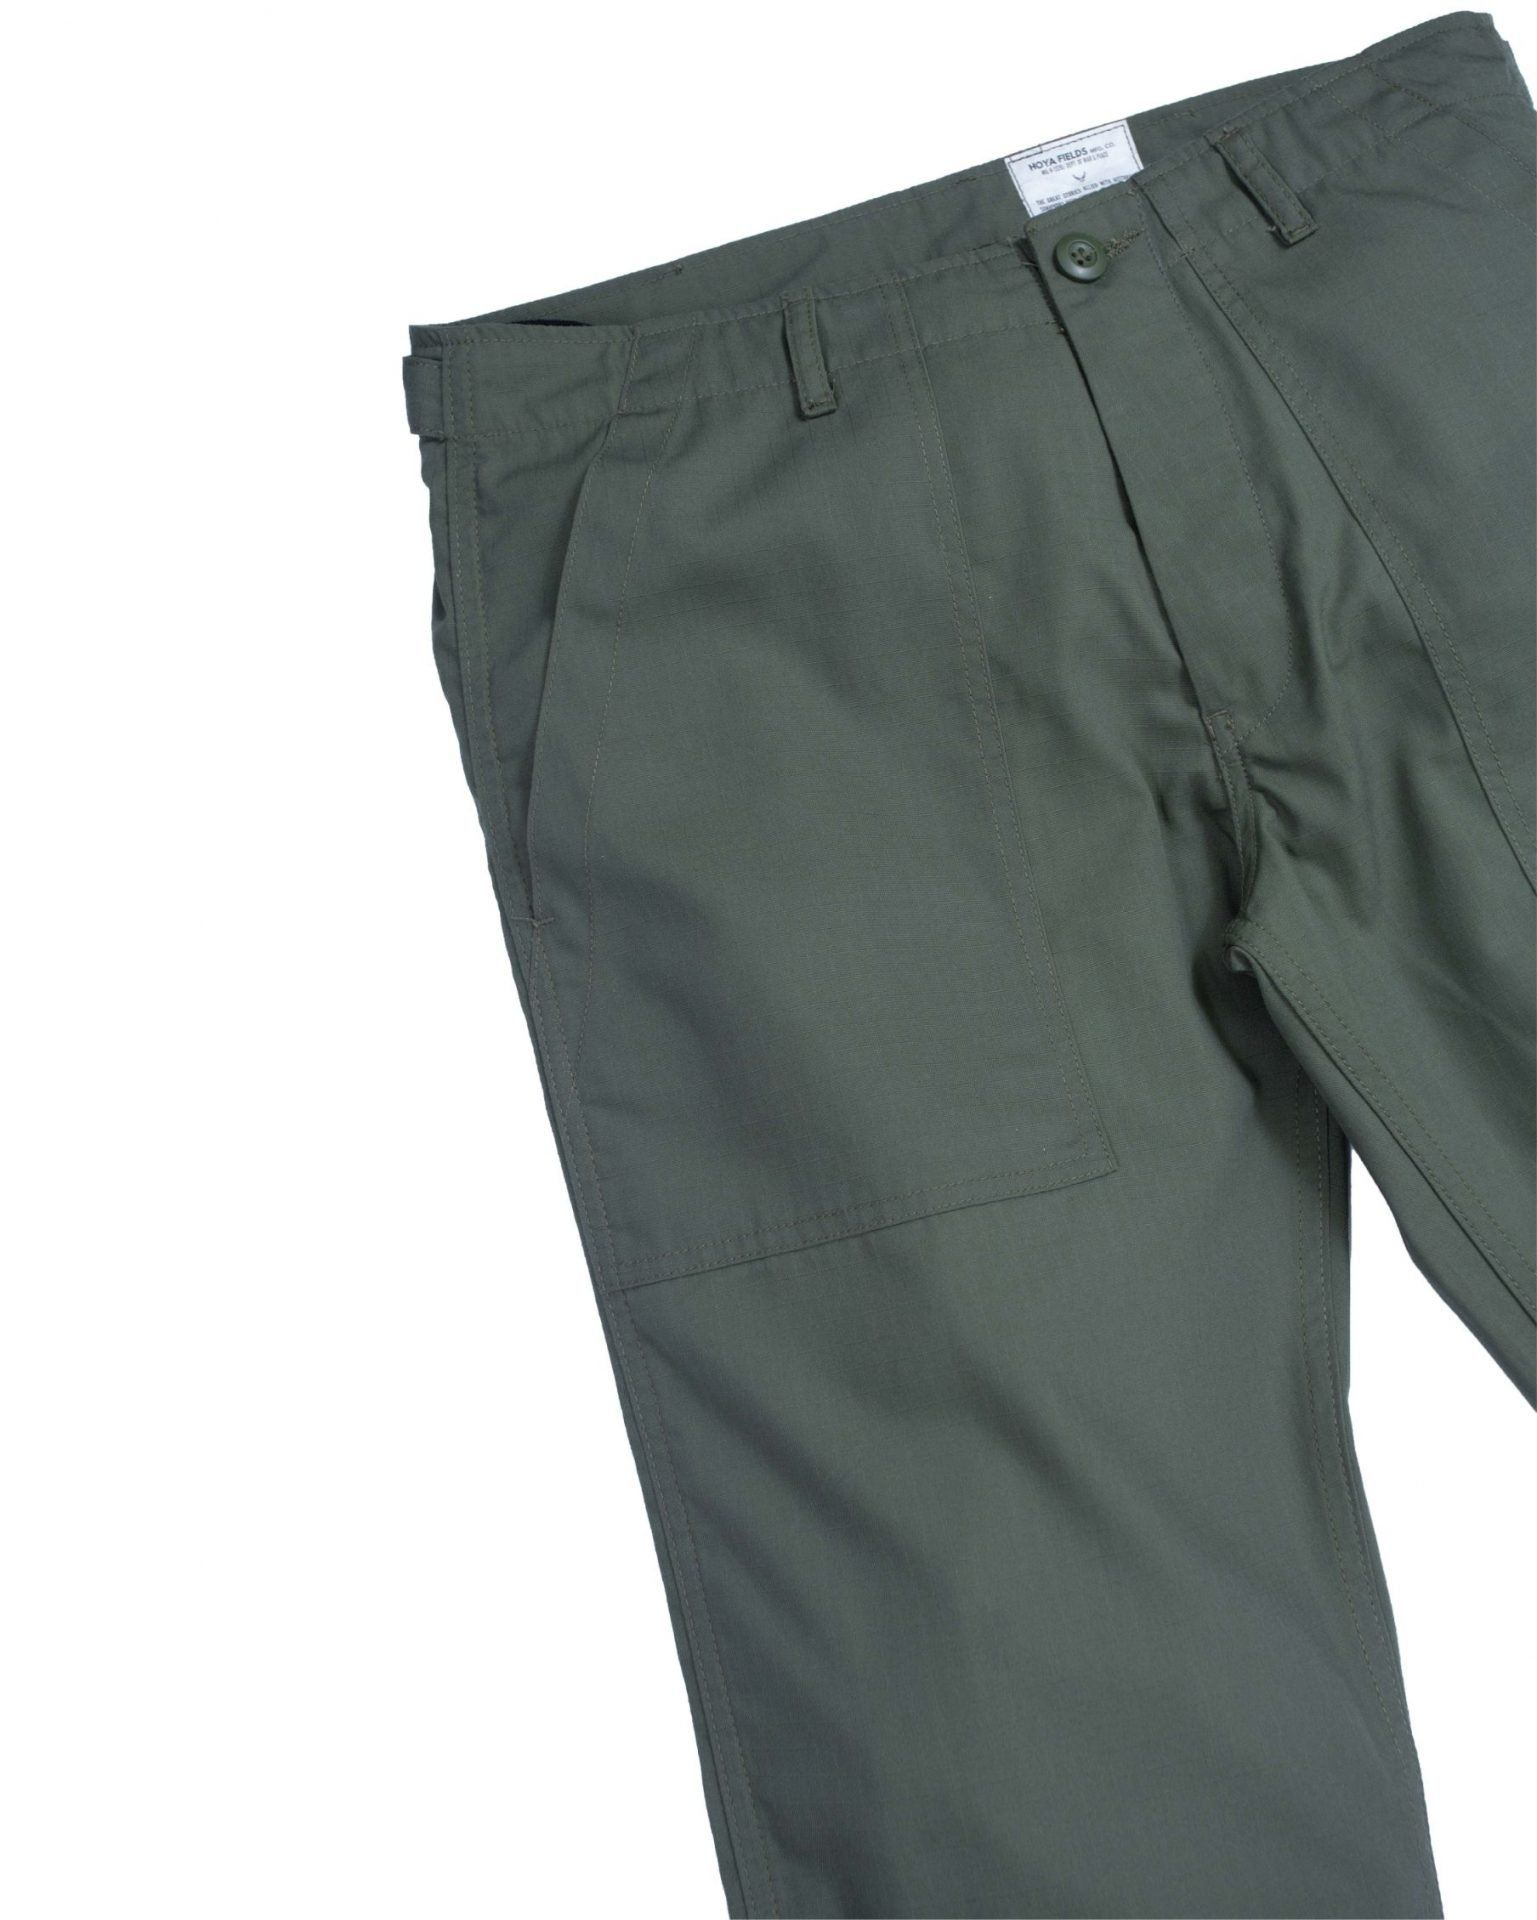 Ripstop Fatigue Pants / Olive